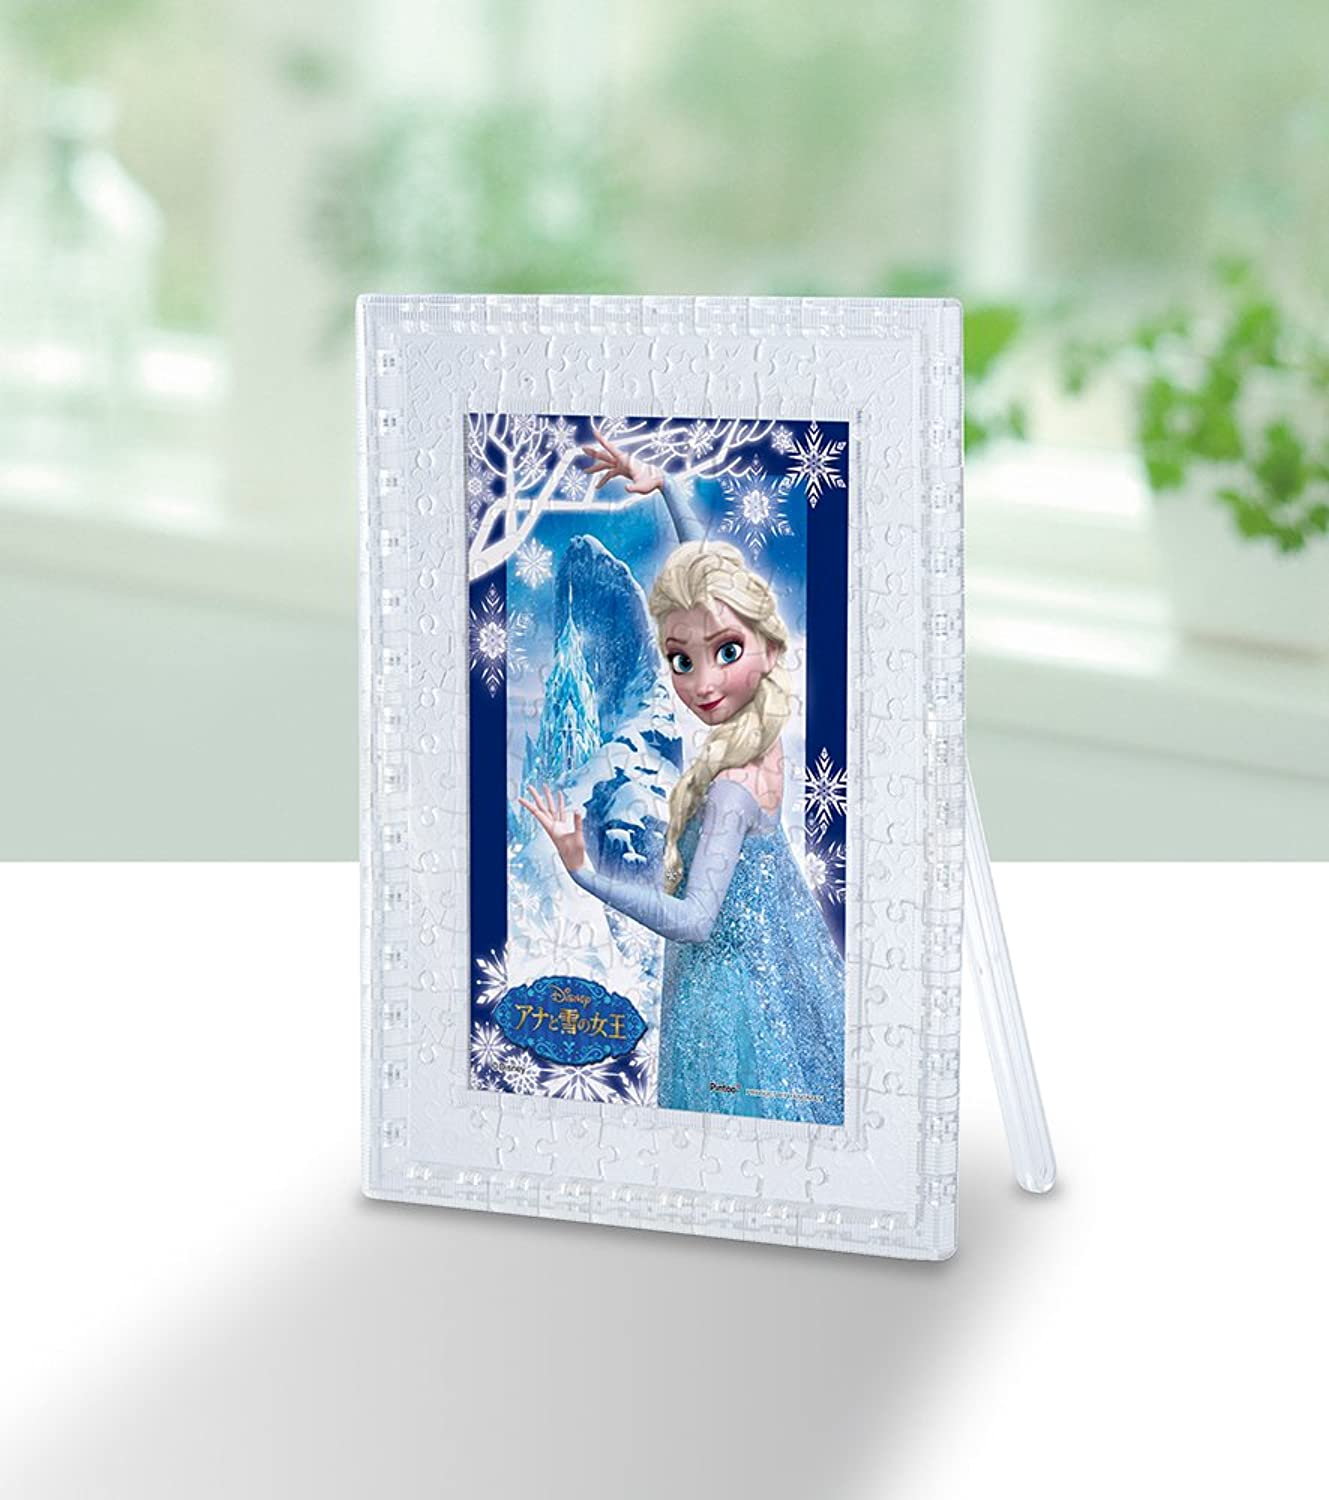 250006 in living color The Snow Queen and the 132 piece puzzle clear stand Ana